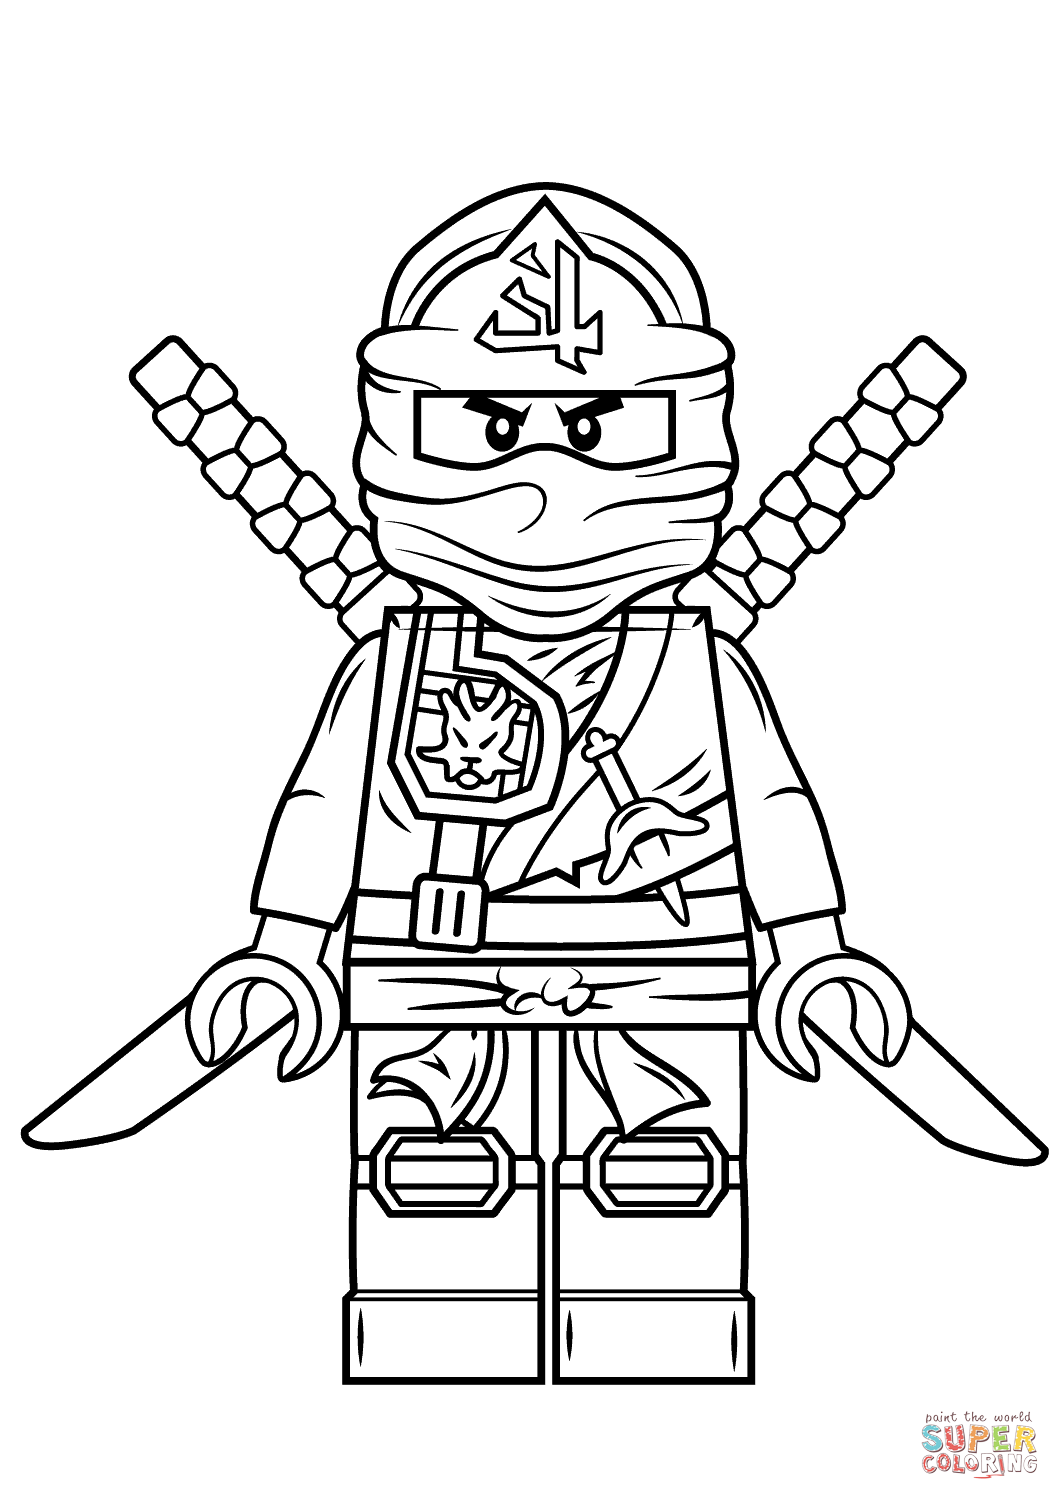 Ninjago Print Foot Freedomtraining Co